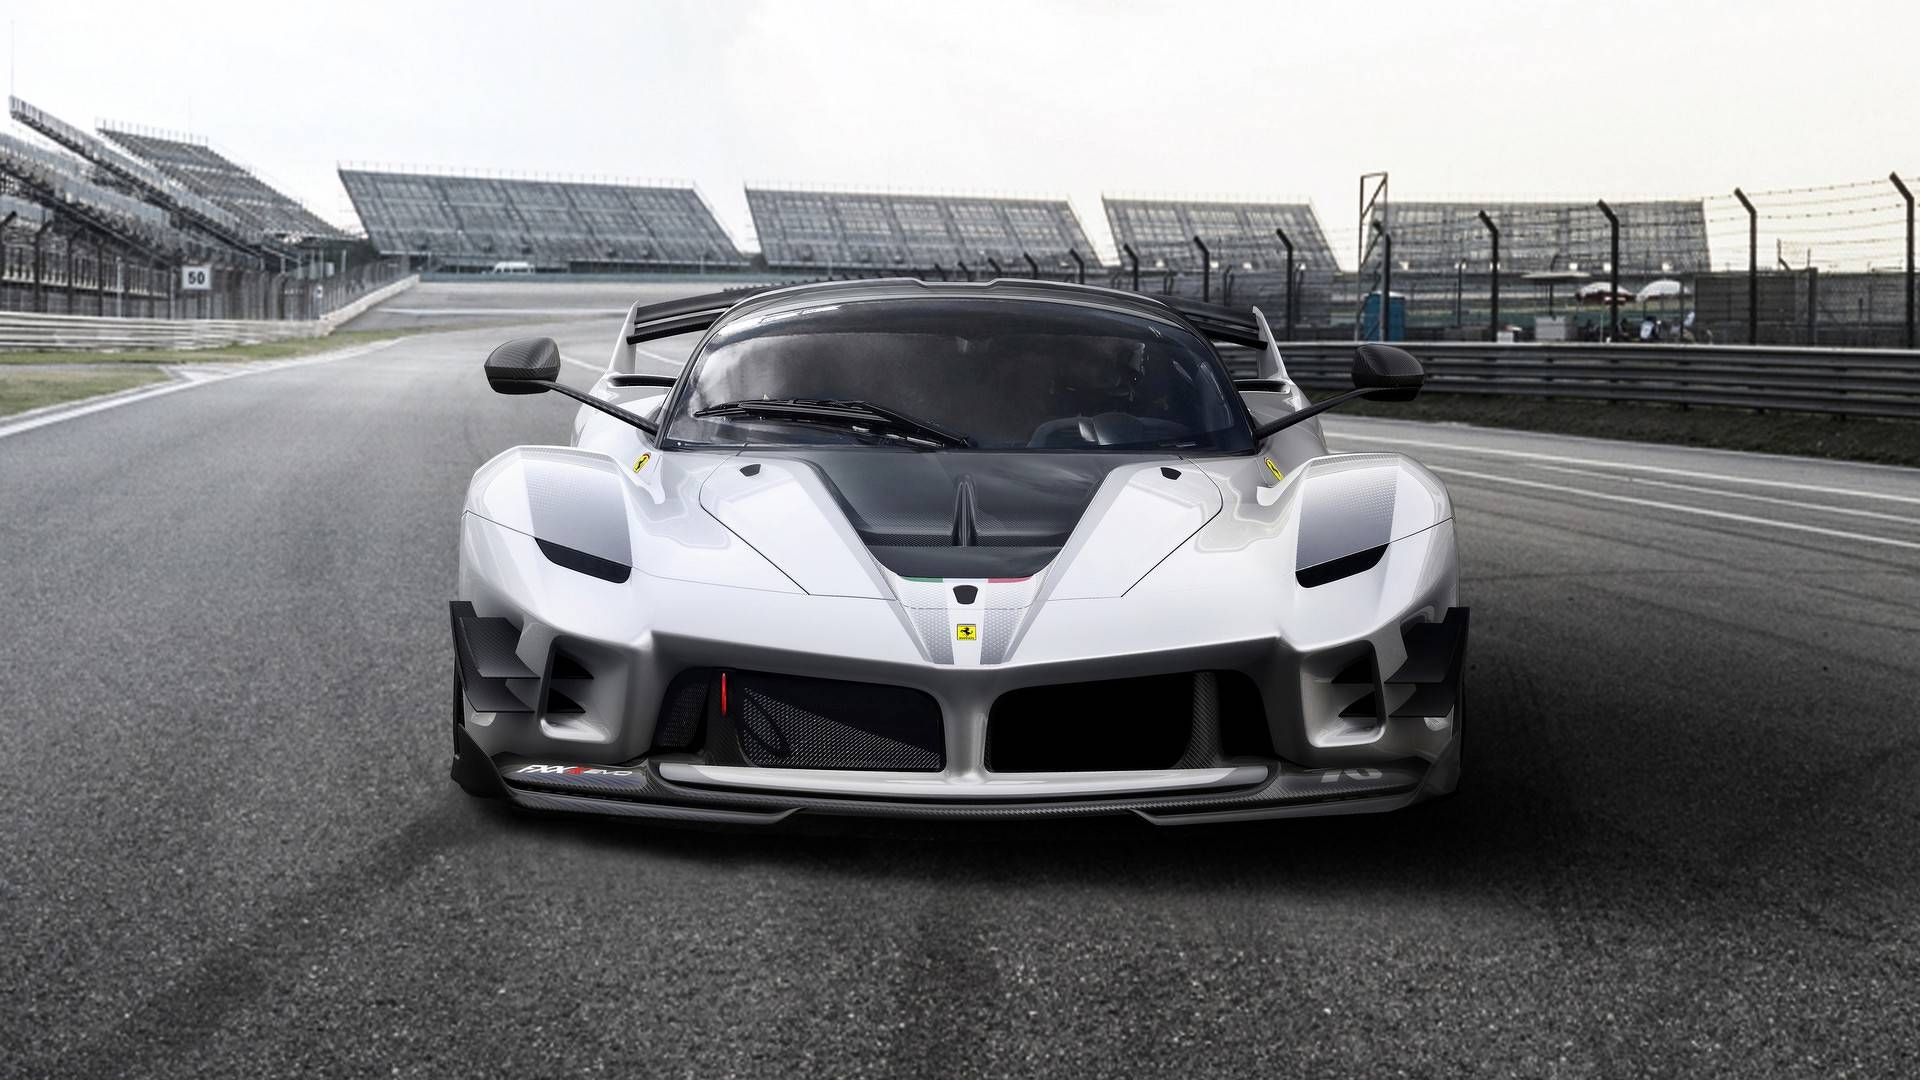 ferrari-fxx-k-evo-available-as-upgrade-package-and-in-turnkey-flavor_1 Amazing Porsche 918 Spyder Concept White Cars Trend